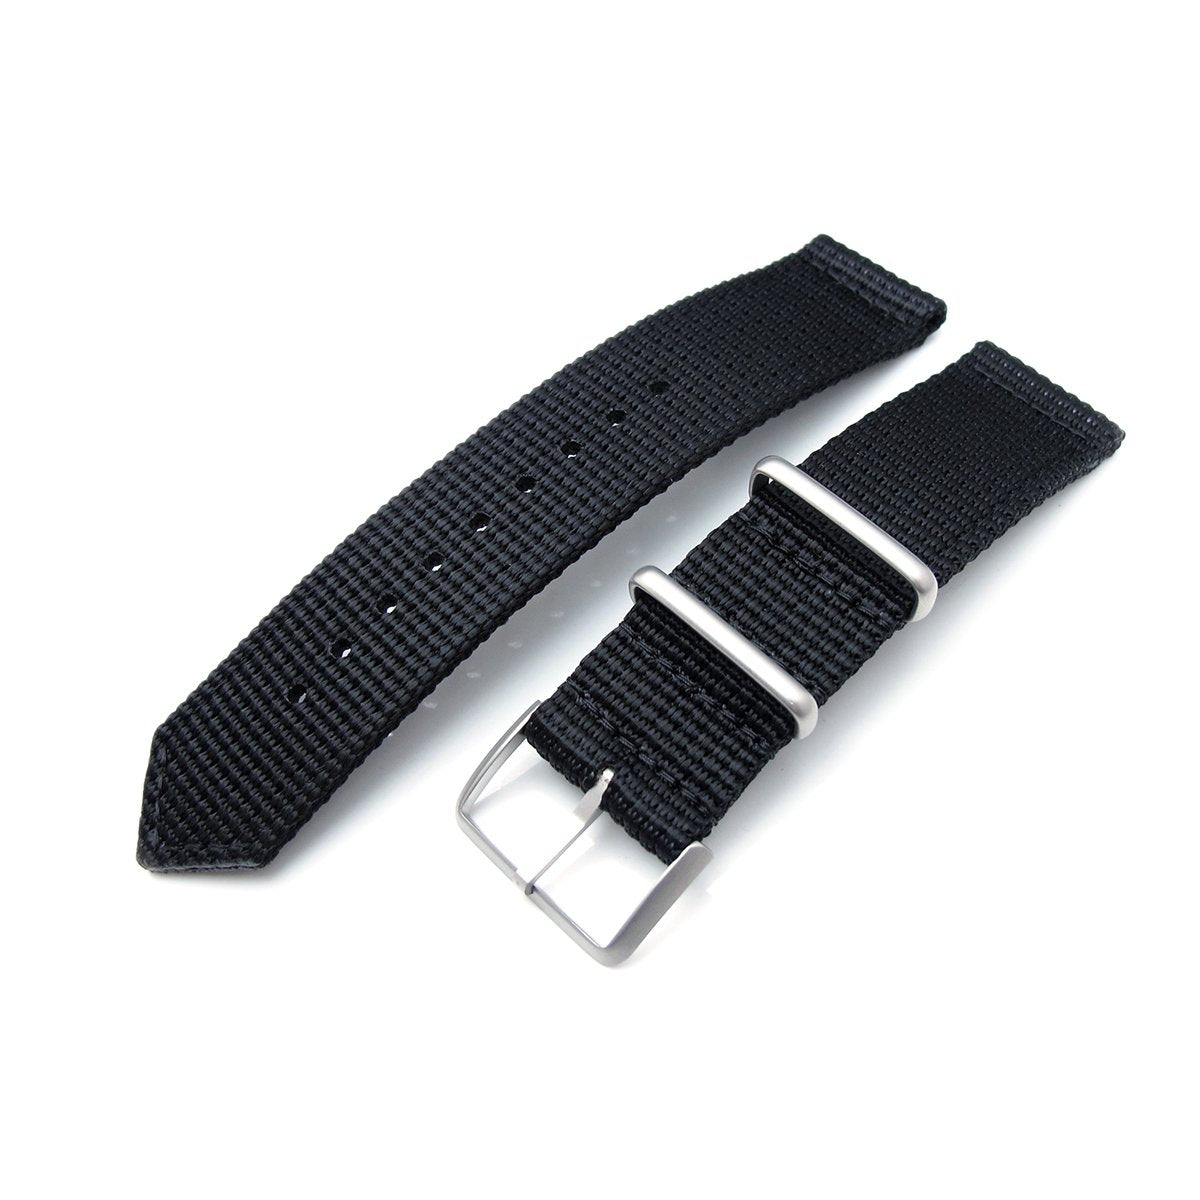 MiLTAT 20mm 22mm Two Piece WW2 G10 Black 3D Nylon Brushed Buckle Strapcode Watch Bands